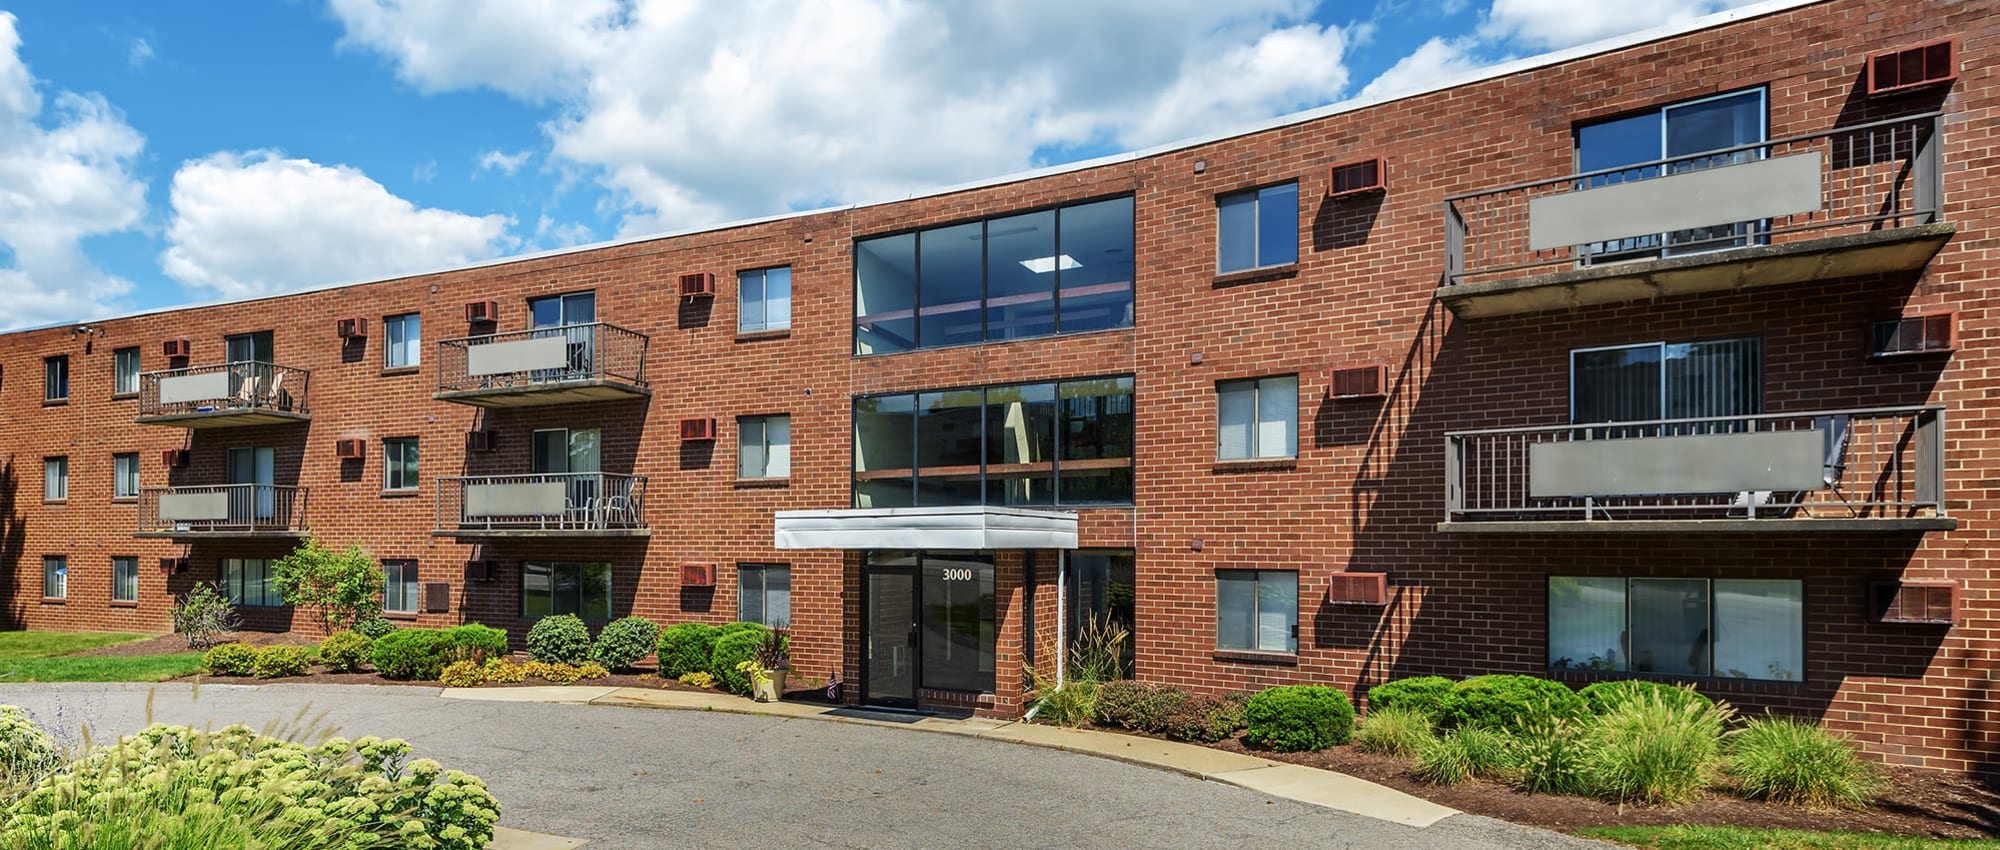 Apartments at Westpointe Apartments in Pittsburgh, Pennsylvania